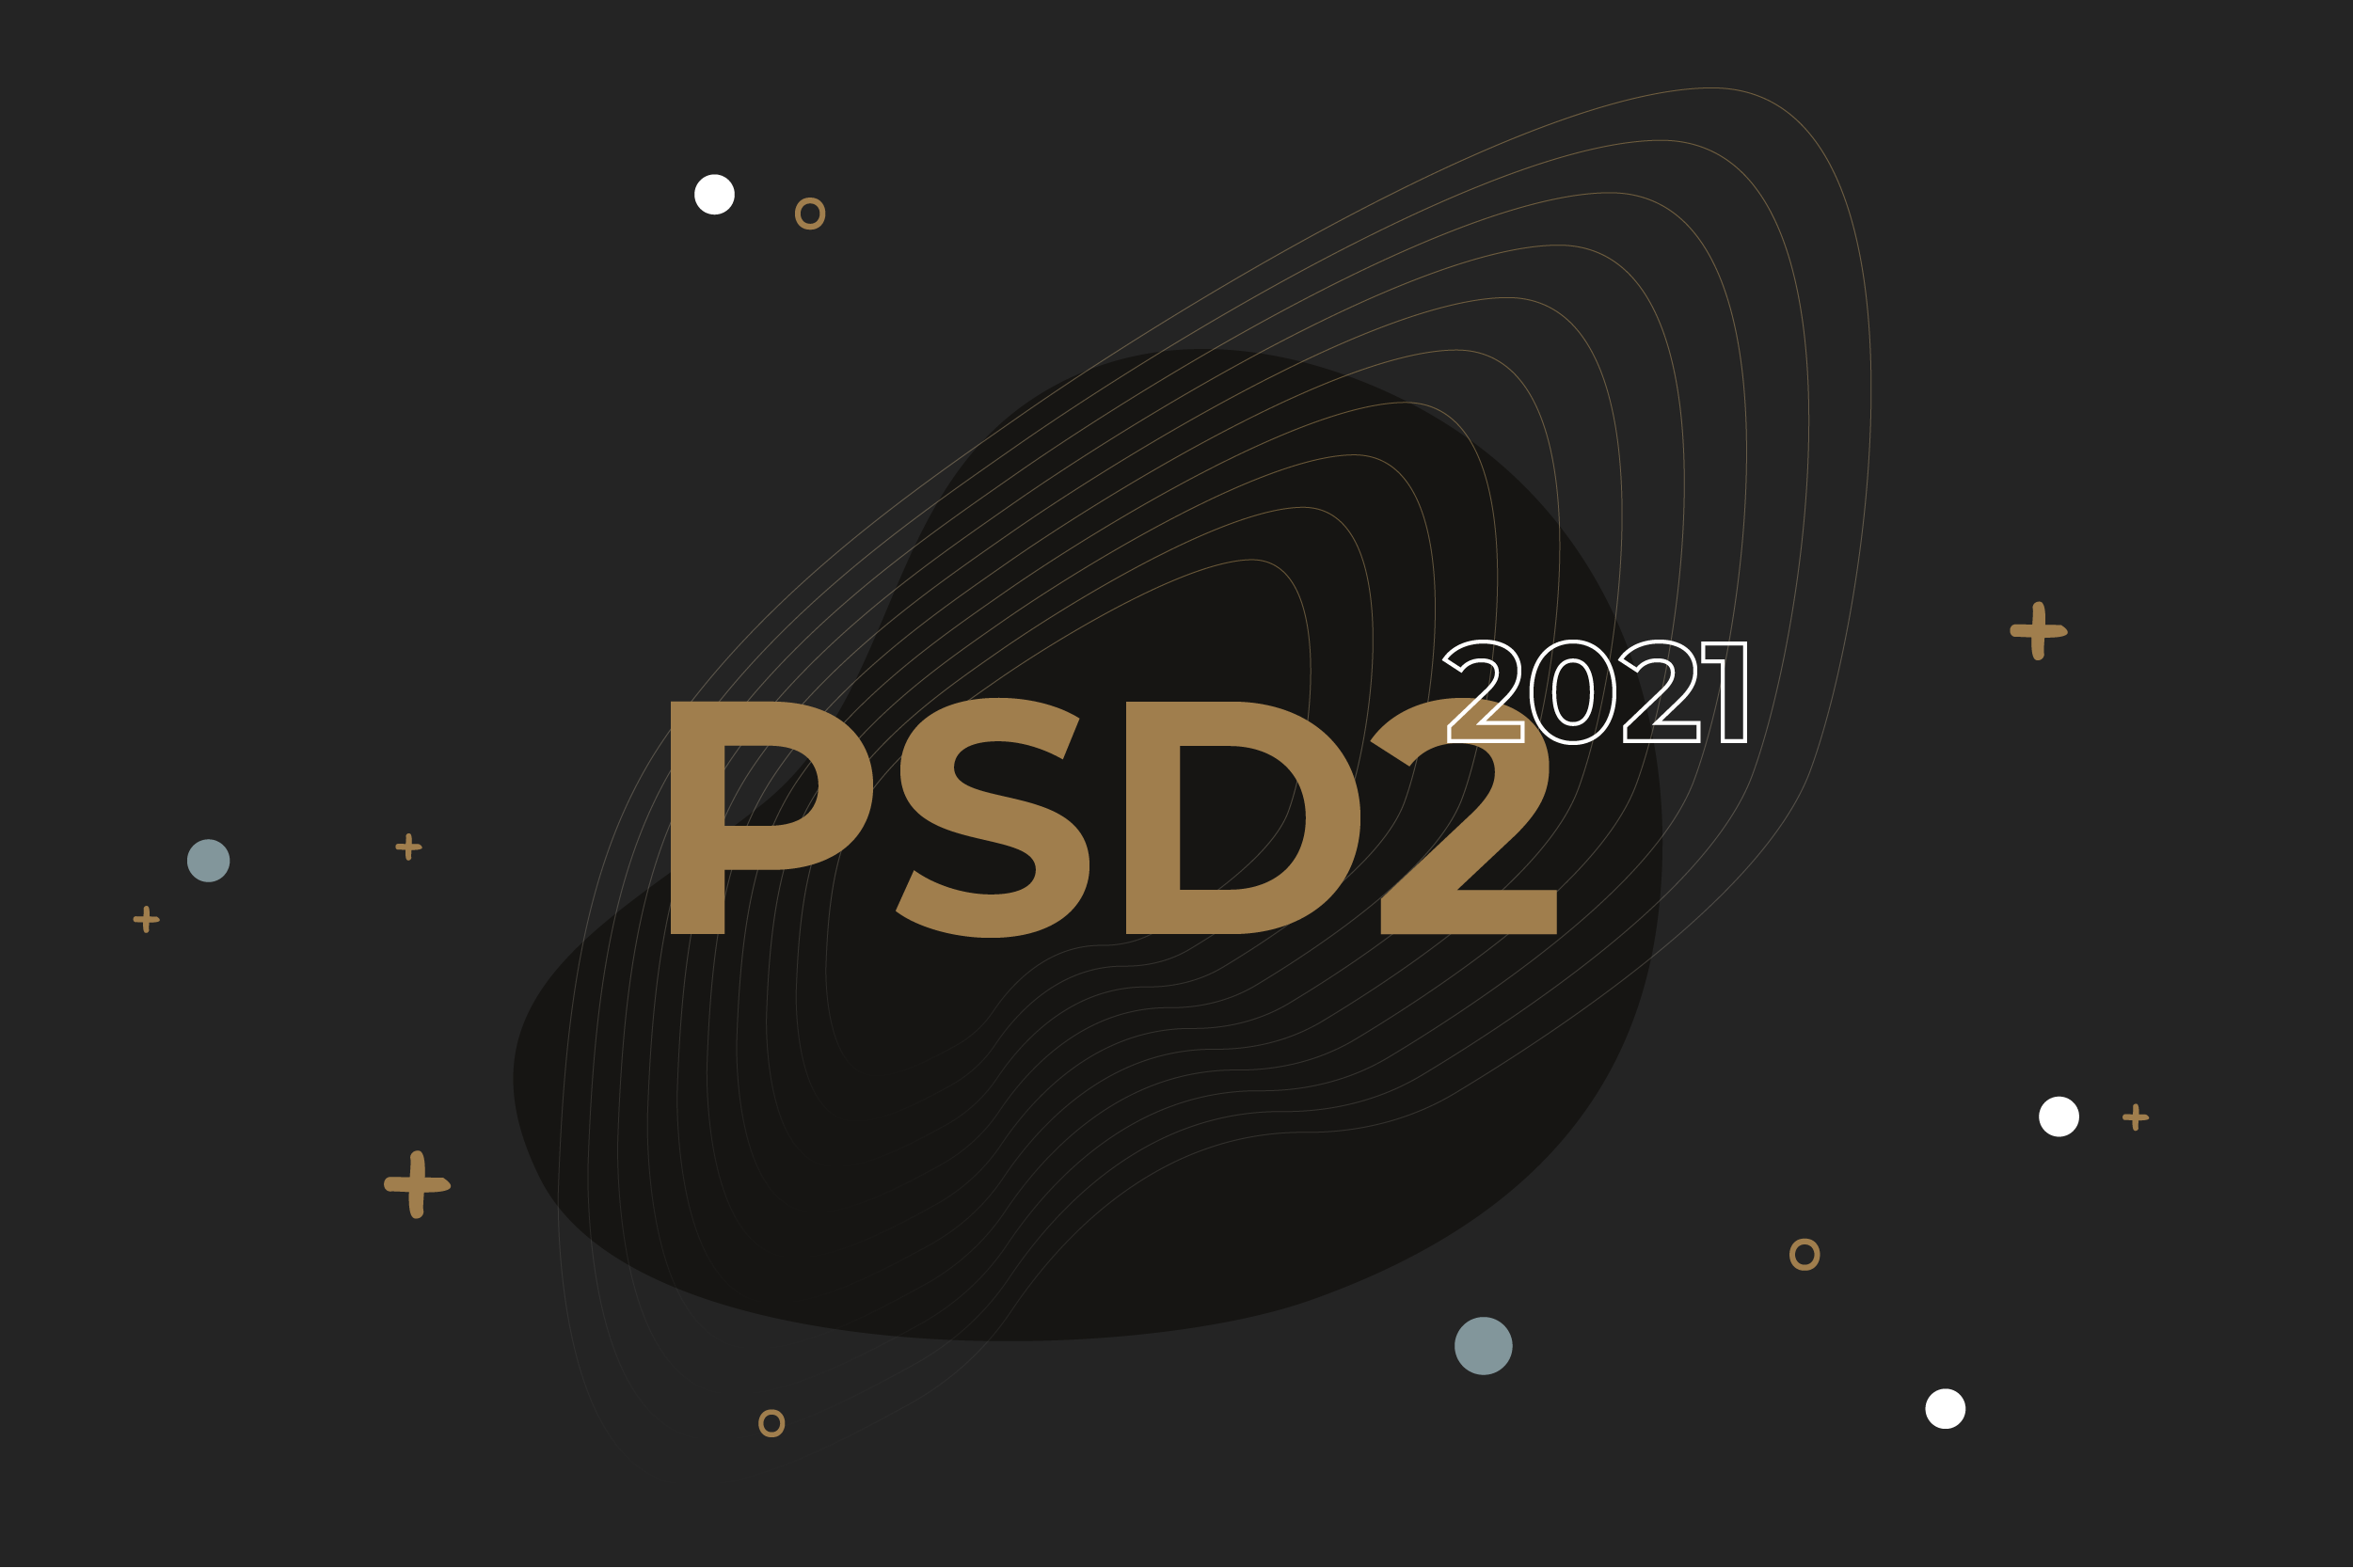 PSD2 update and new Maxpay services